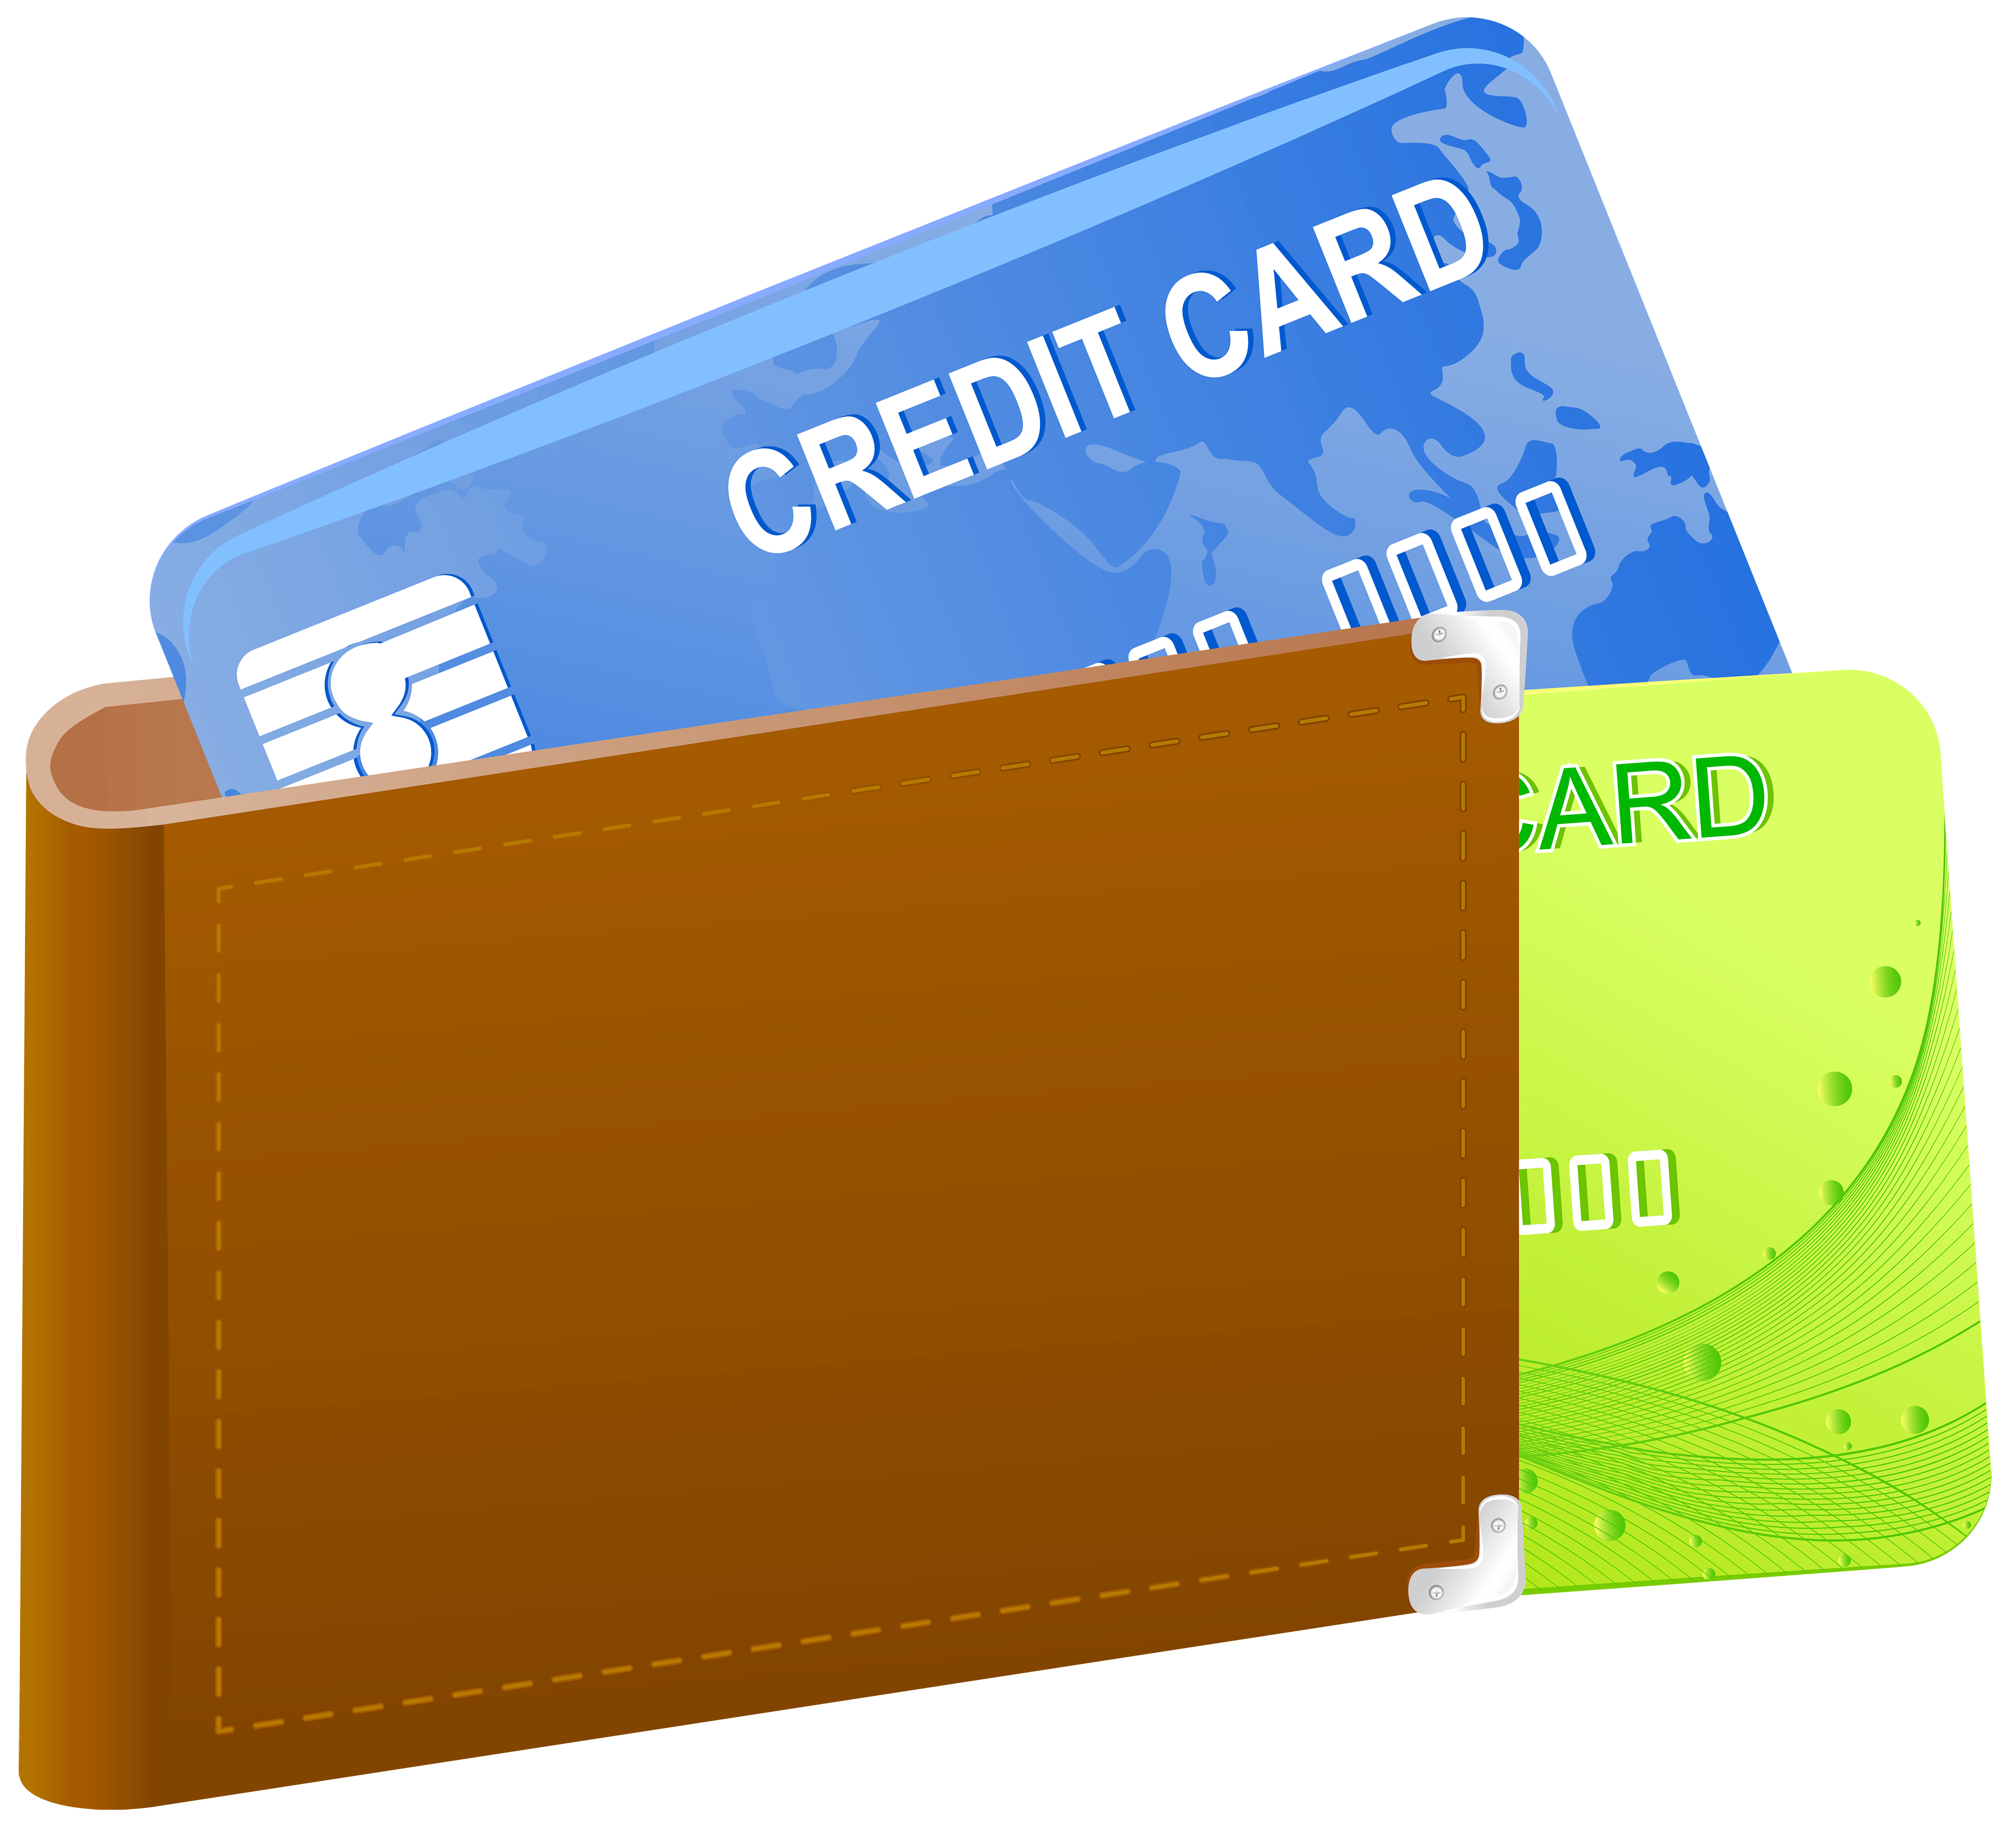 With credit cards png. Wallet clipart freeuse stock